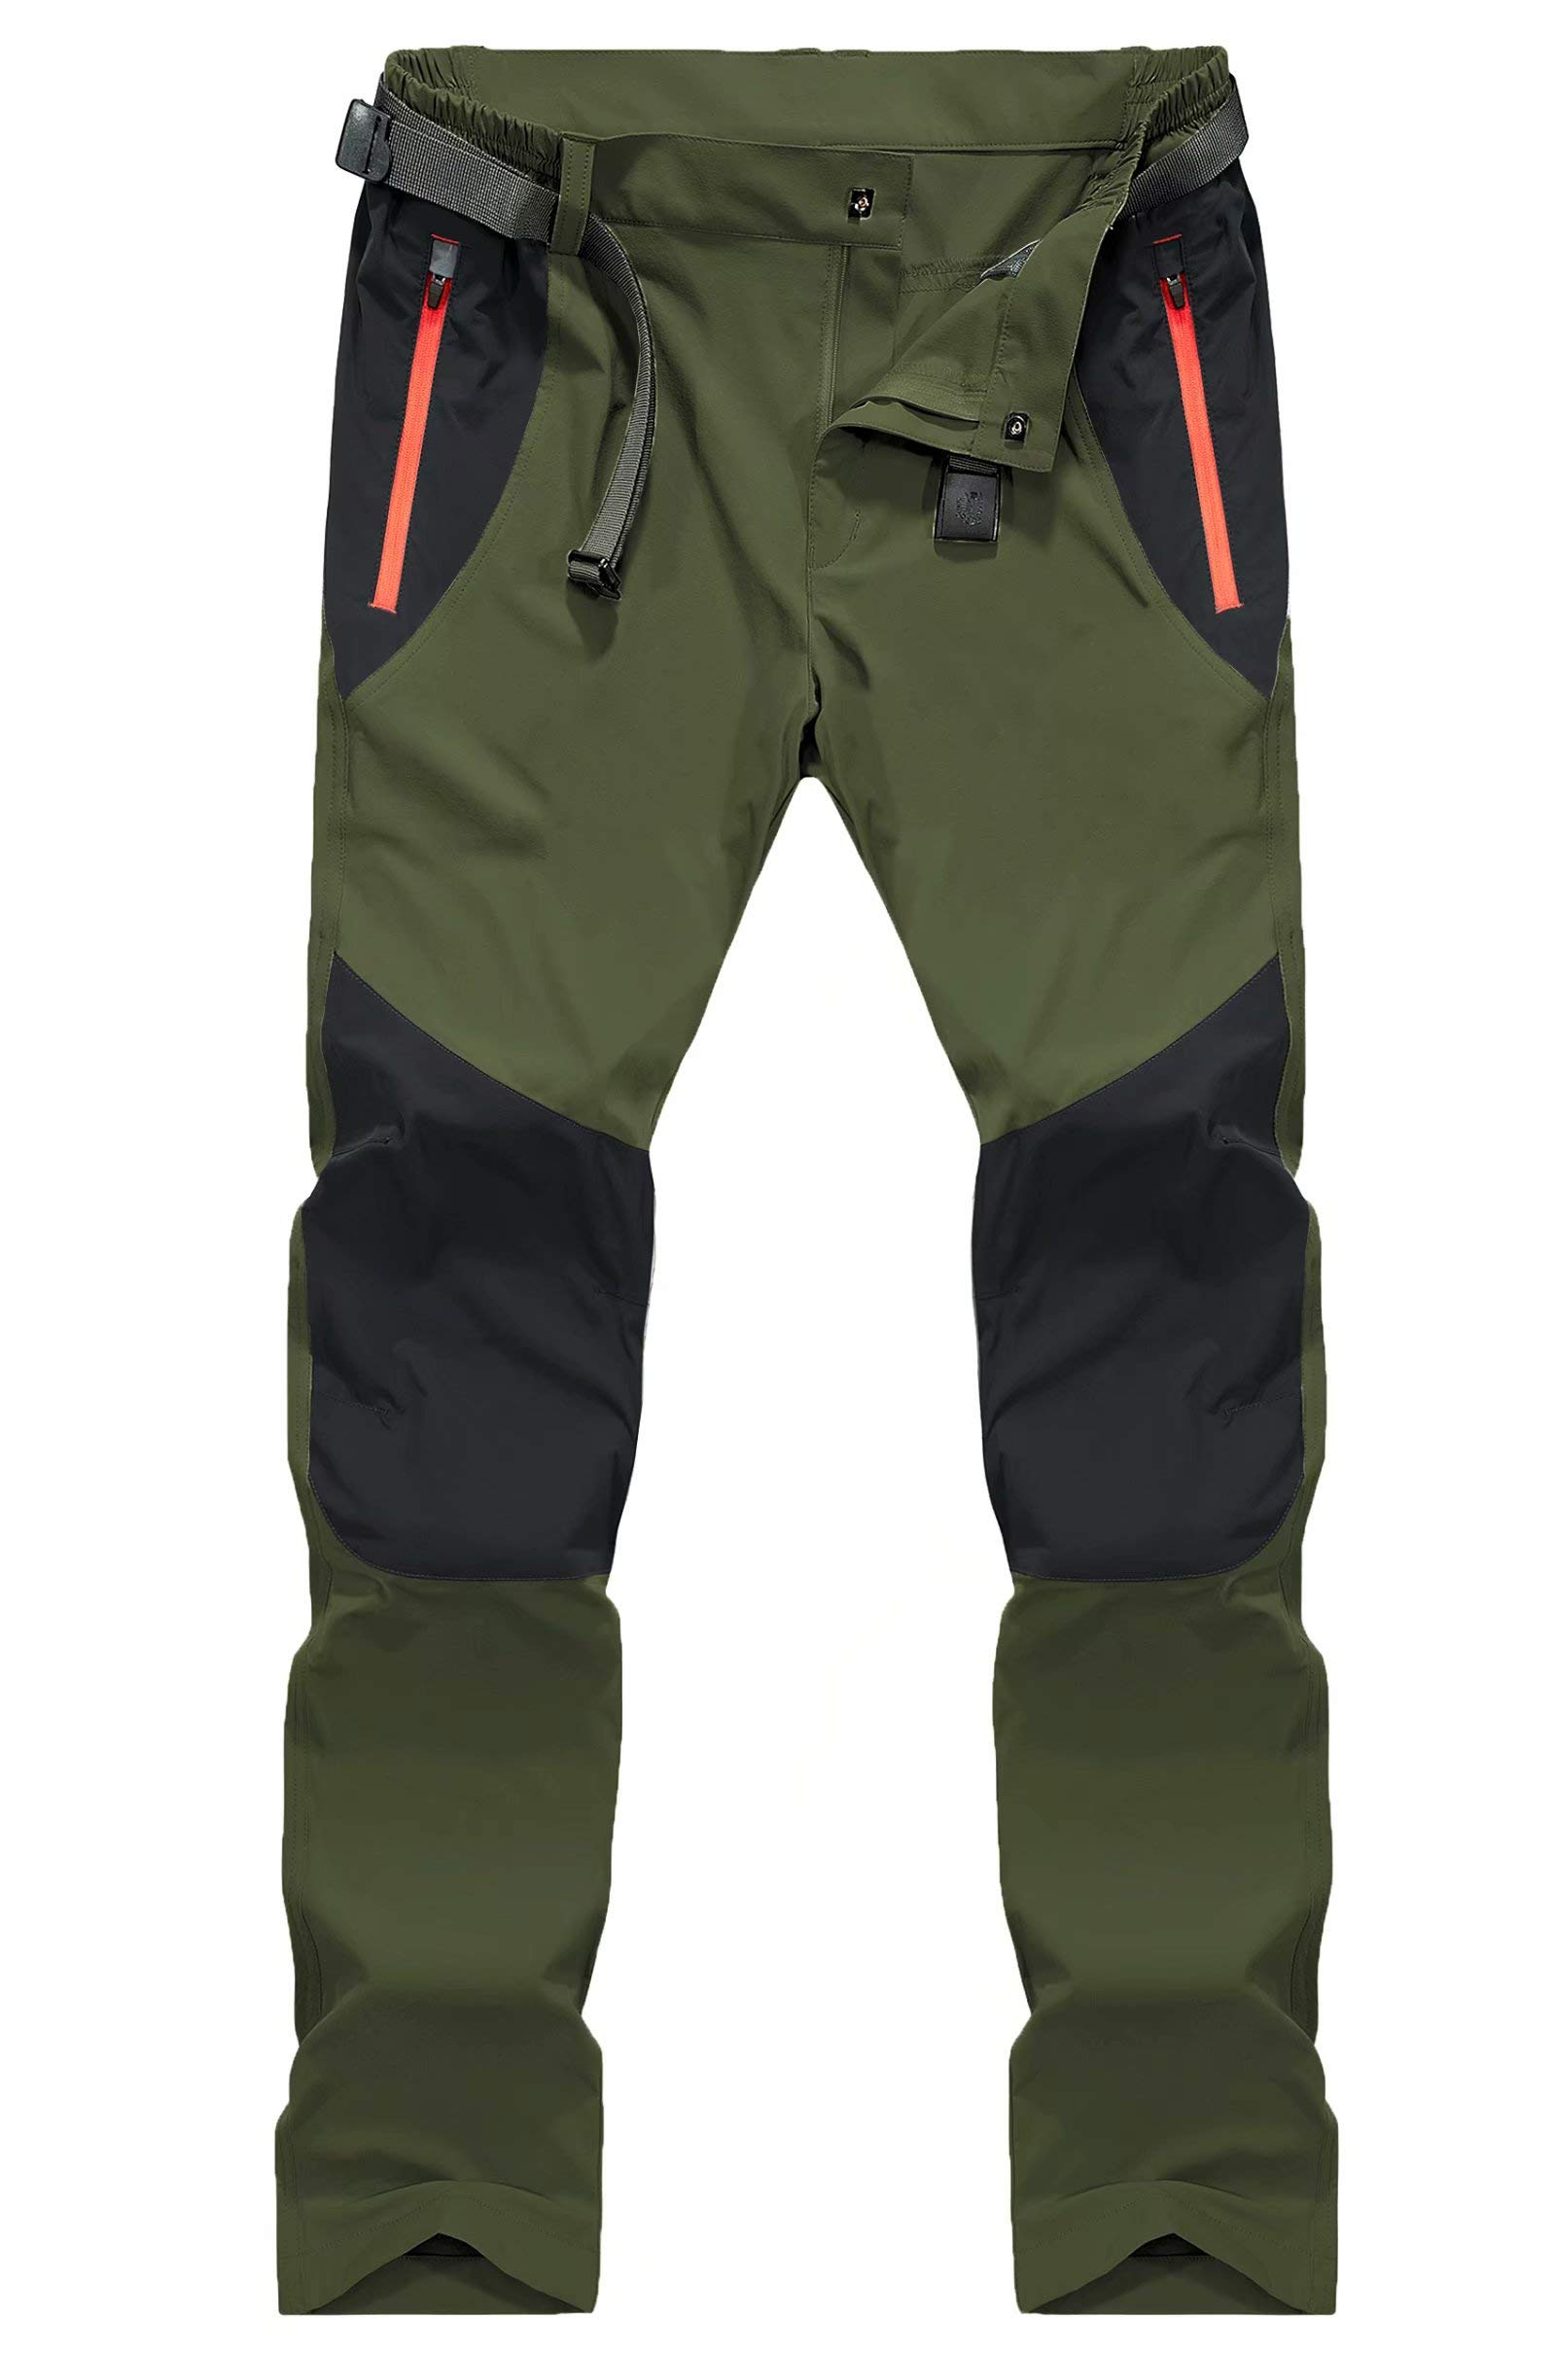 MAGCOMSEN Men's Hiking Pants with Zipper Pockets Quick Dry Elastic Waist Lightweight Fishing Work Pants